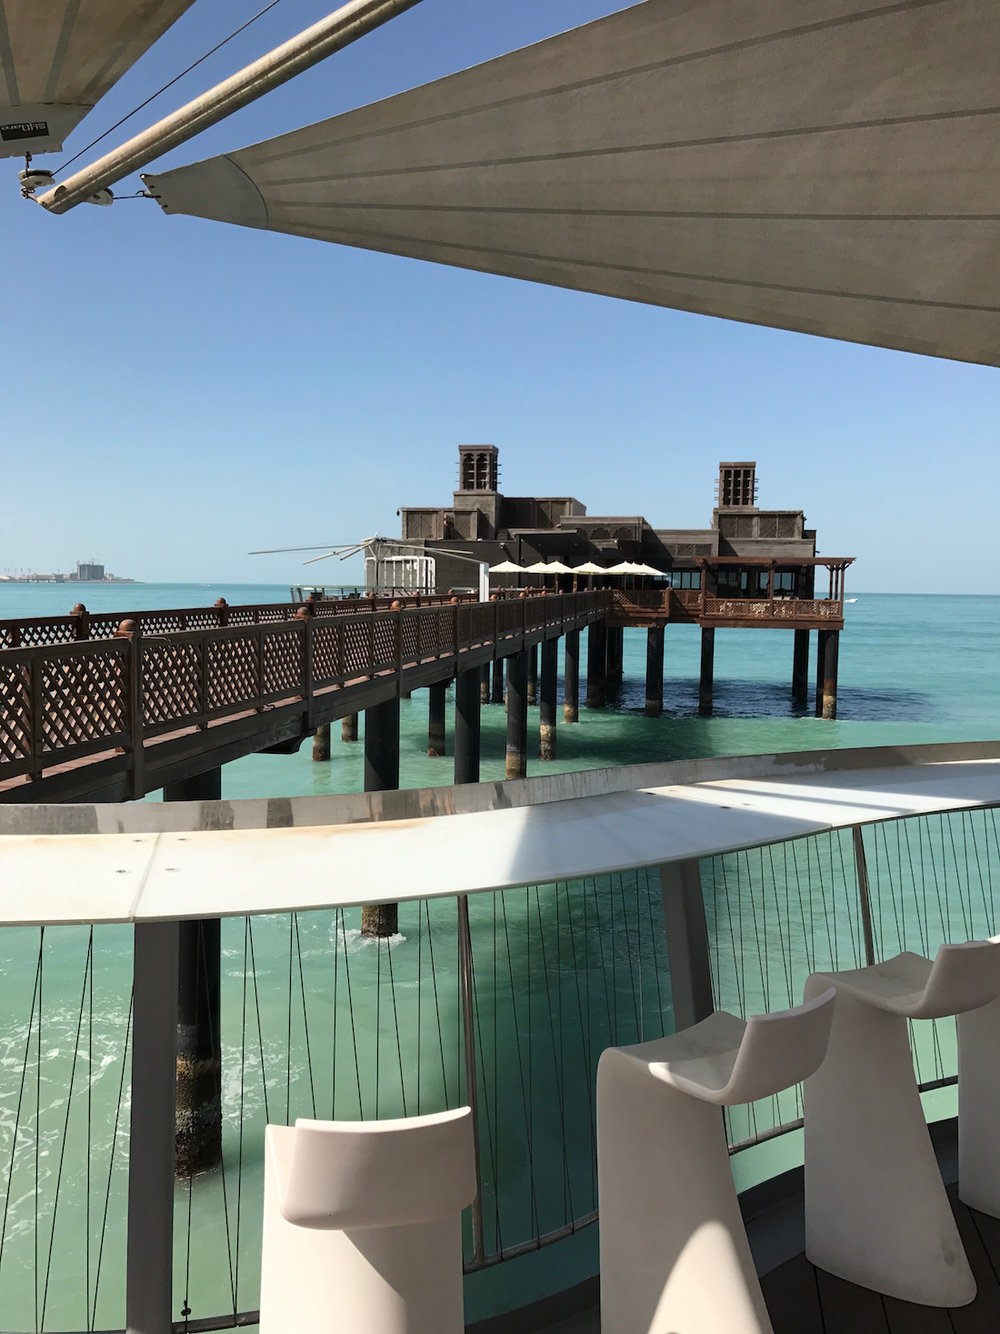 Pierchic Restaurant at Hotel Al Qasr, Dubai